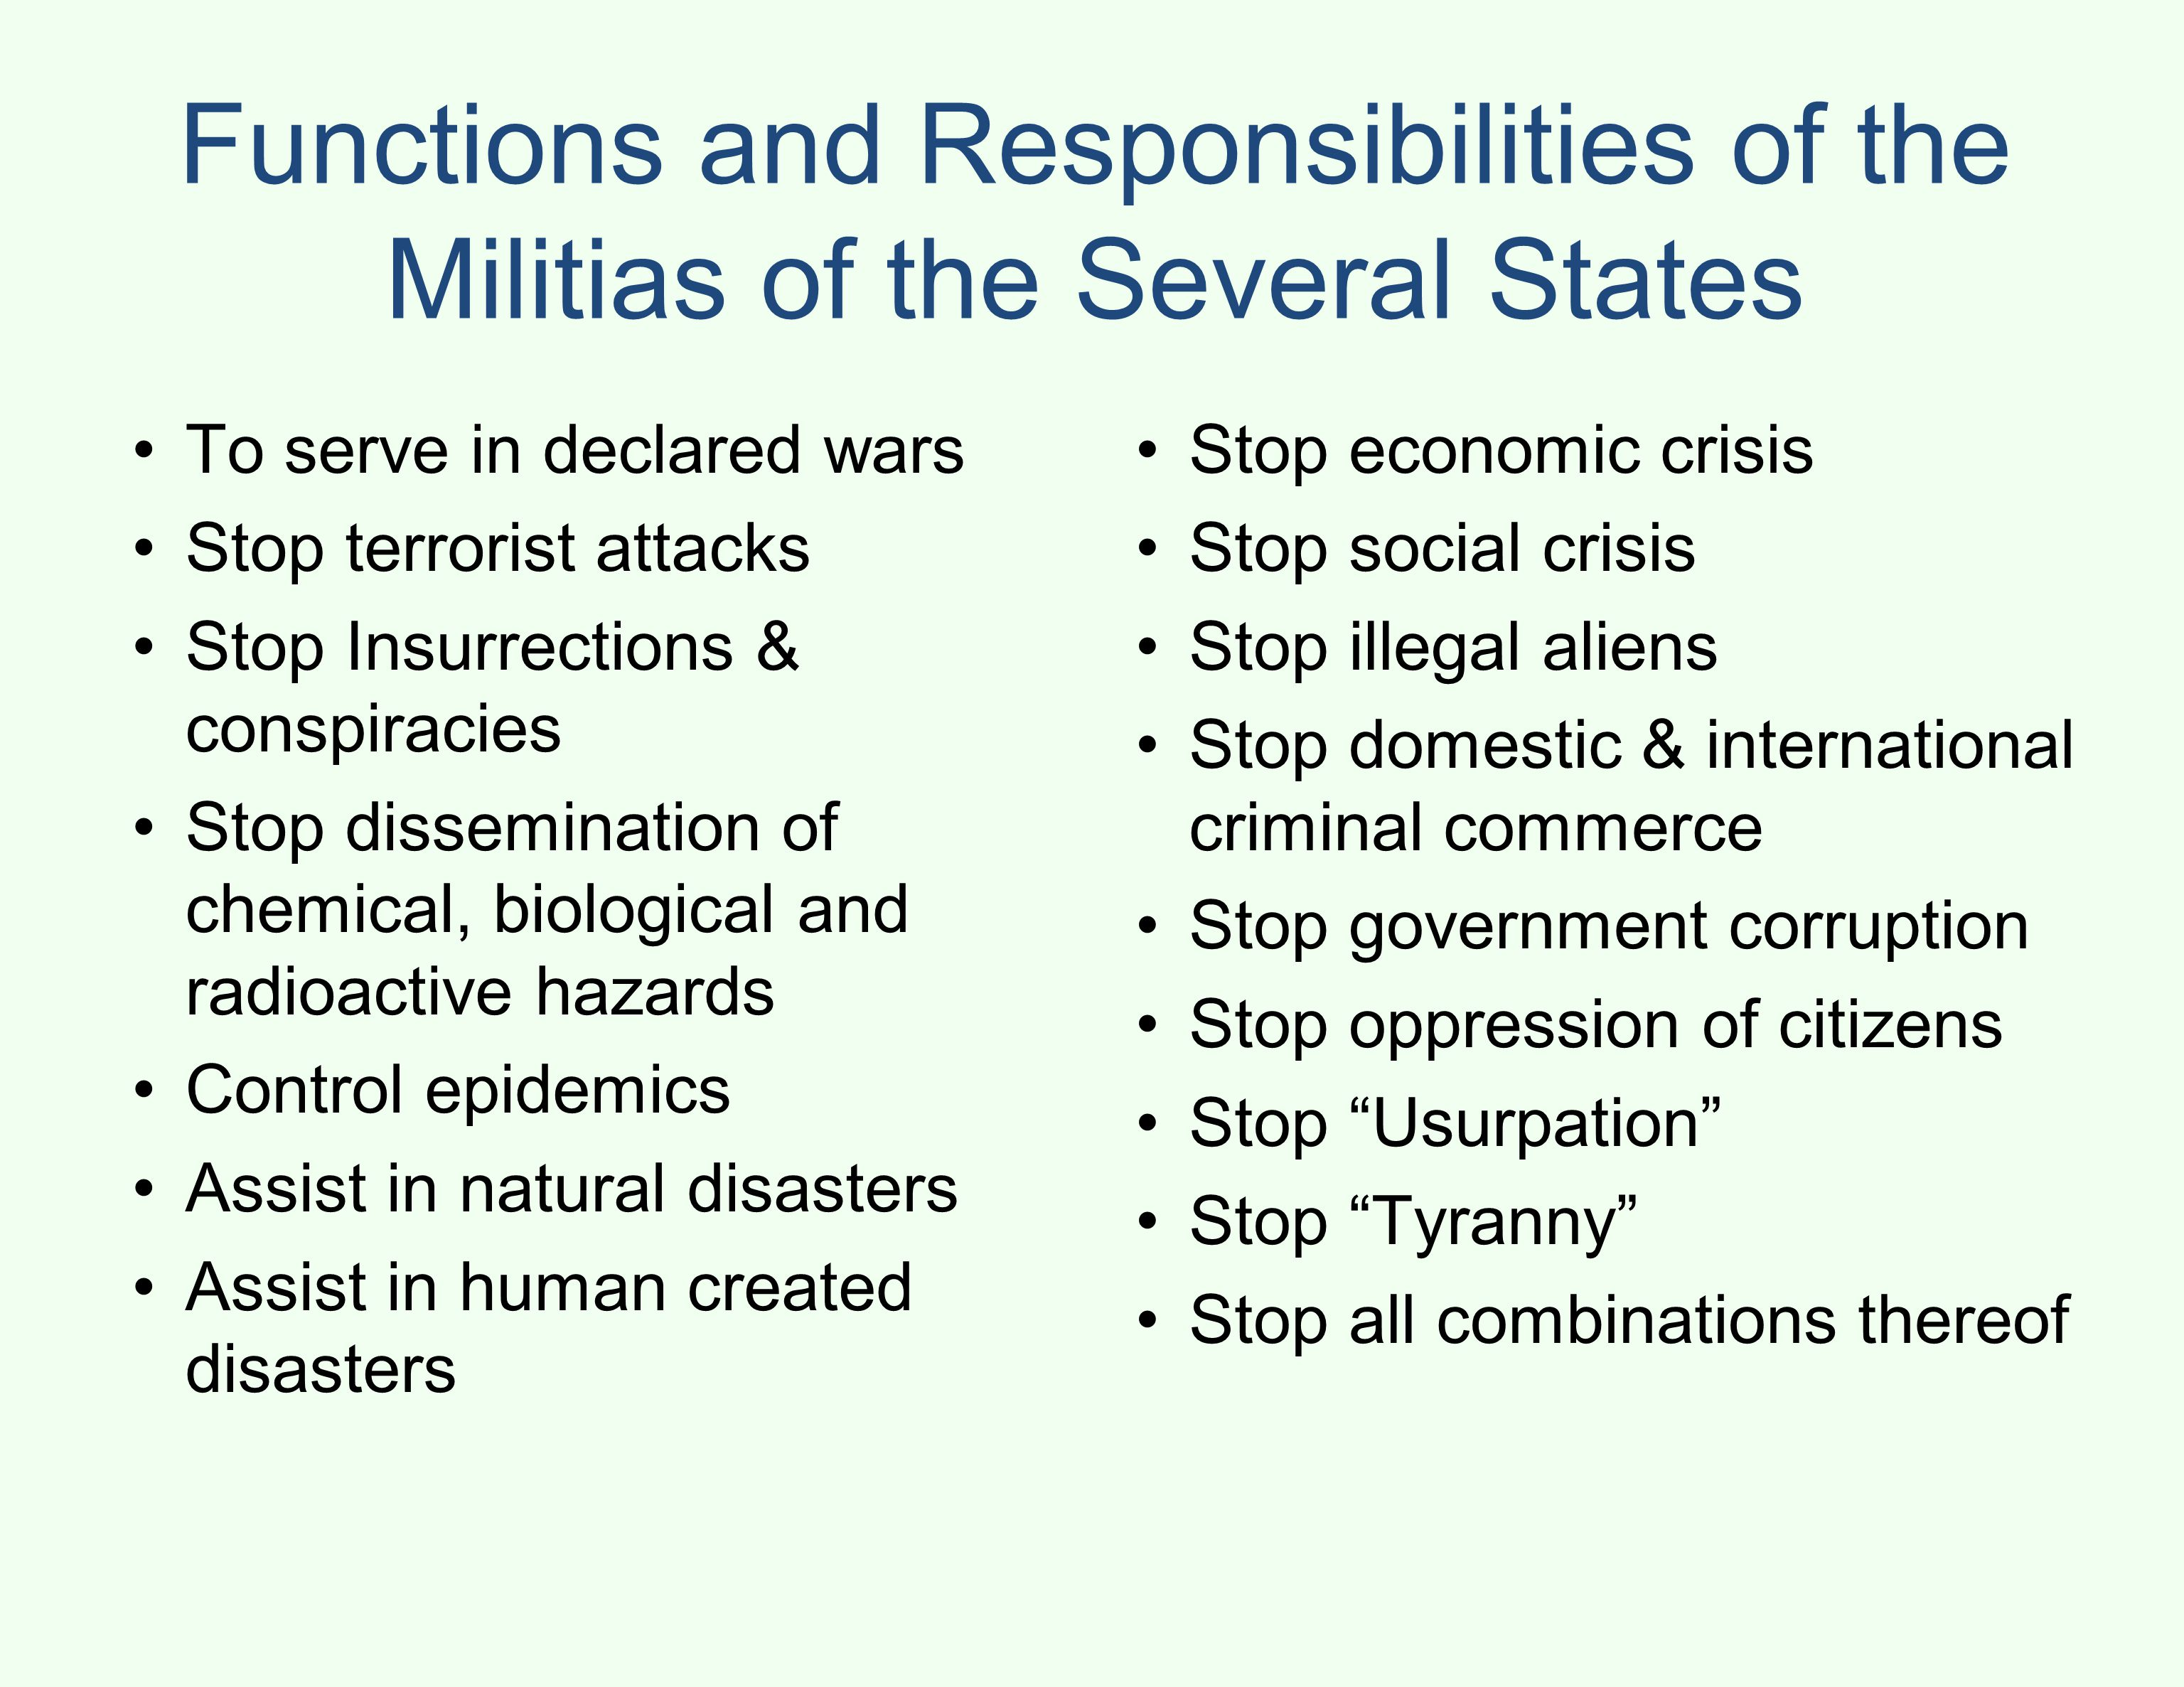 Functions and Responsibilities of the Militias of the Several States To serve in declared wars Stop terrorist attacks Stop Insurrections & conspiracies Stop dissemination of chemical, biological and radioactive hazards Control epidemics Assist in natural disasters Assist in human created disasters Stop economic crisis Stop social crisis Stop illegal aliens Stop domestic & international criminal commerce Stop government corruption Stop oppression of citizens Stop Usurpation Stop Tyranny Stop all combinations thereof